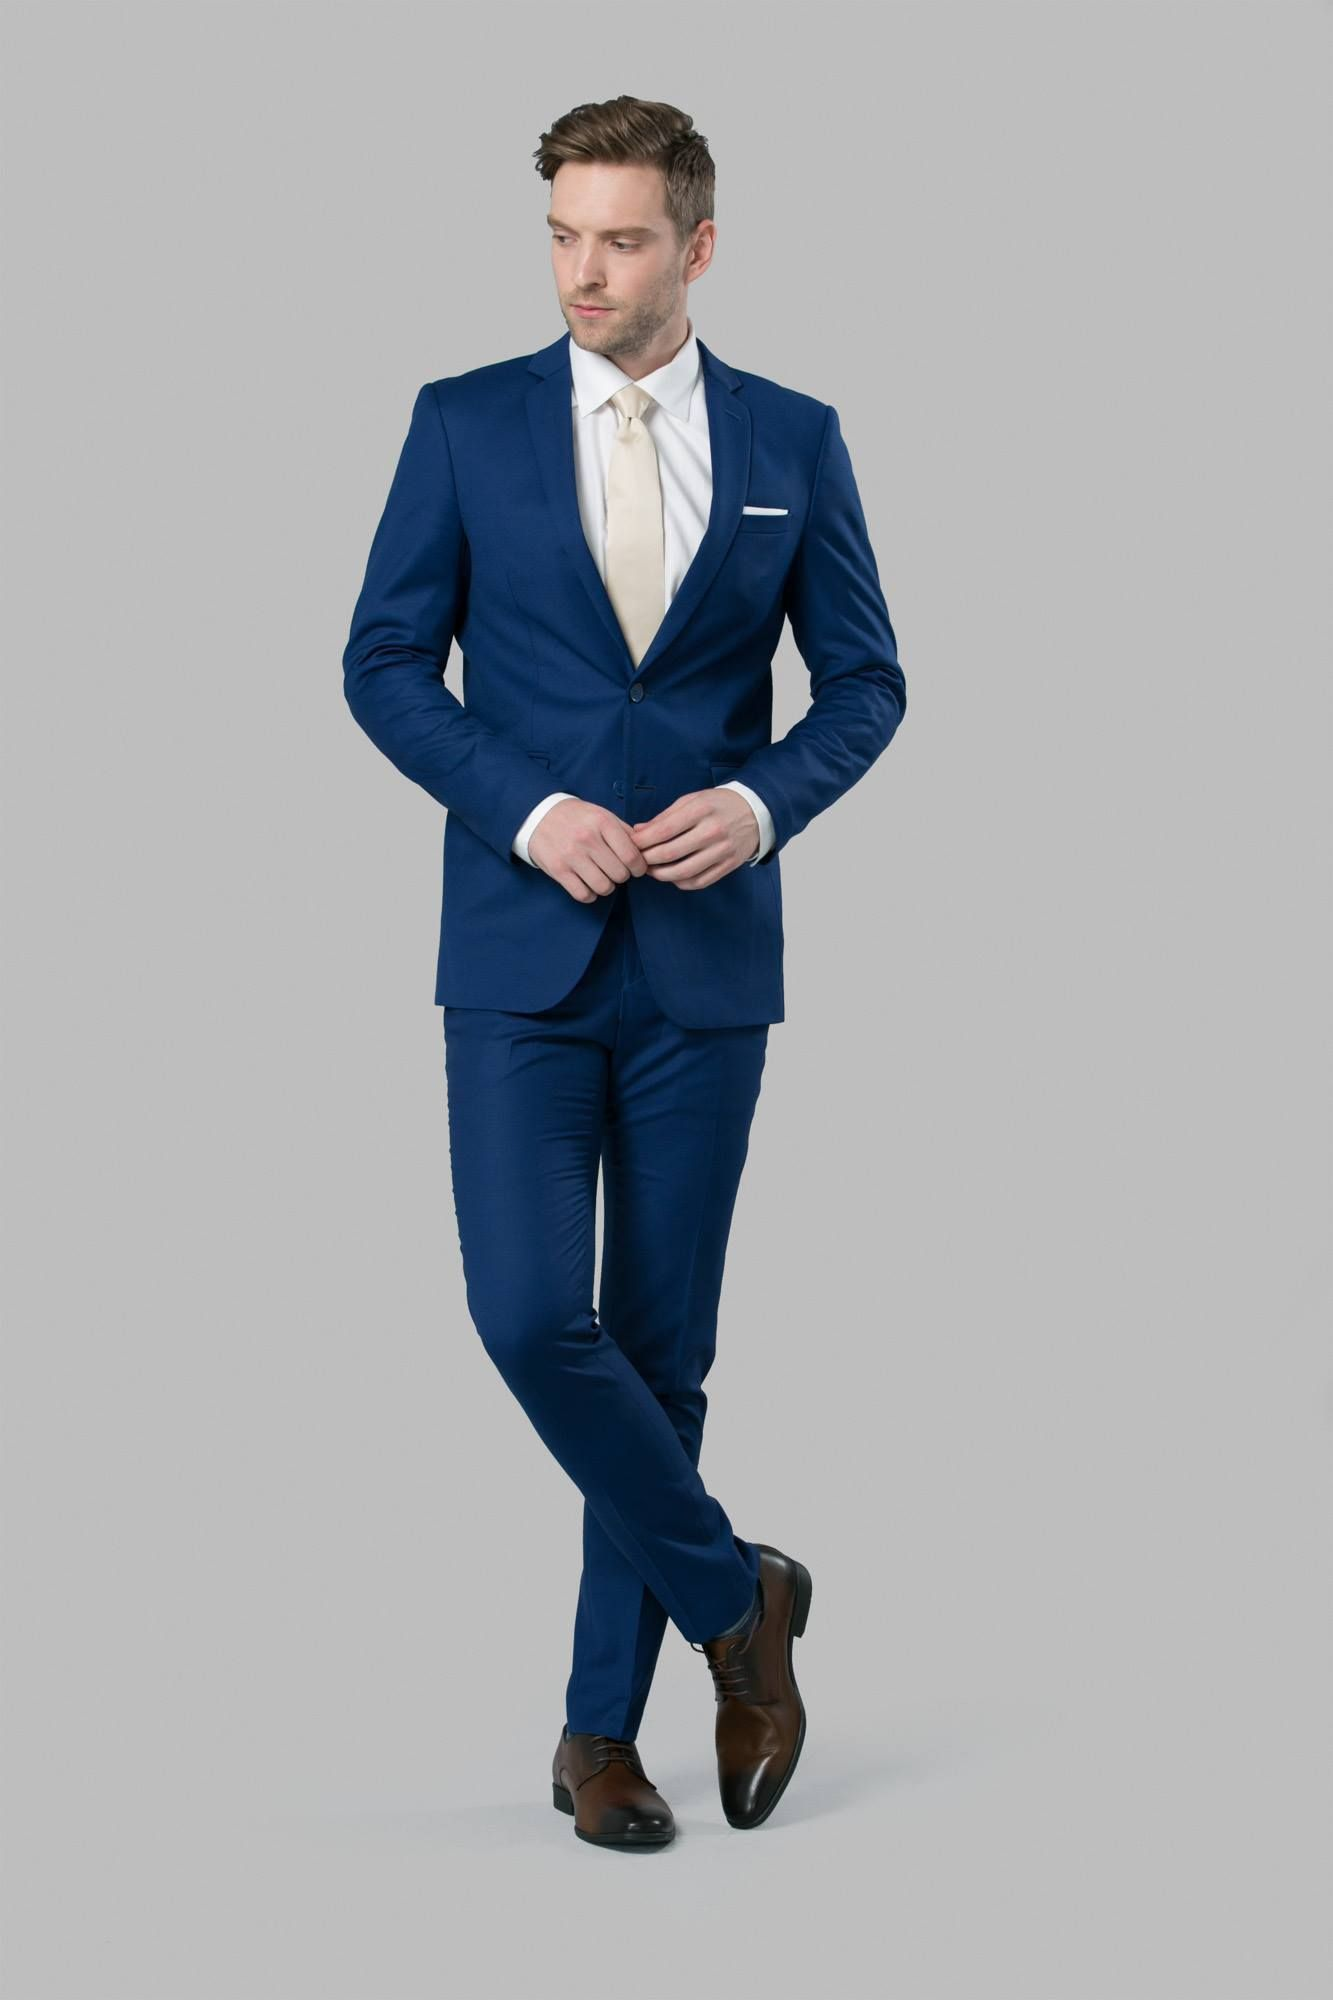 96ec52150a94 Navy Suit with Champagne tie | Dream Grooms in 2019 | Blue suit ...